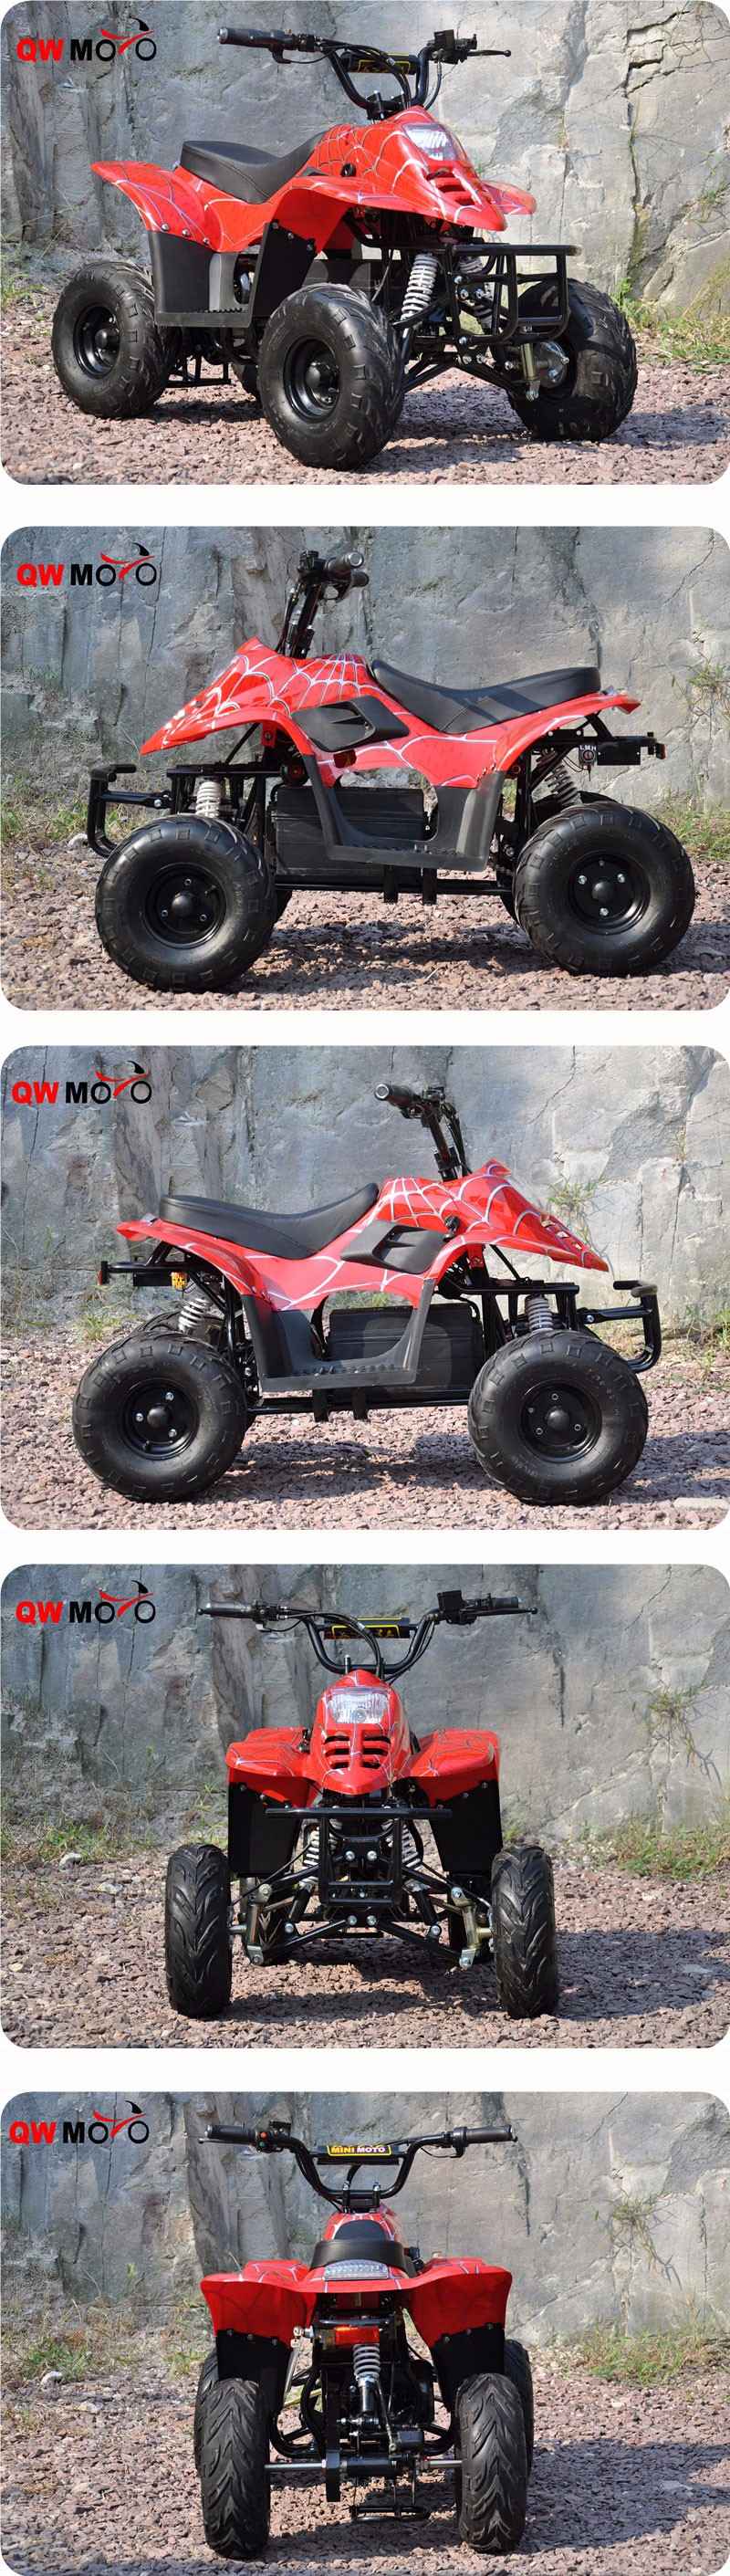 QWMOTO CE NEW ELECTRIC CHILDREN ATV 500W 48V BRUSHLESS ADULTS ELECTRIC ATV FOR SALE(QWMATV-01D)